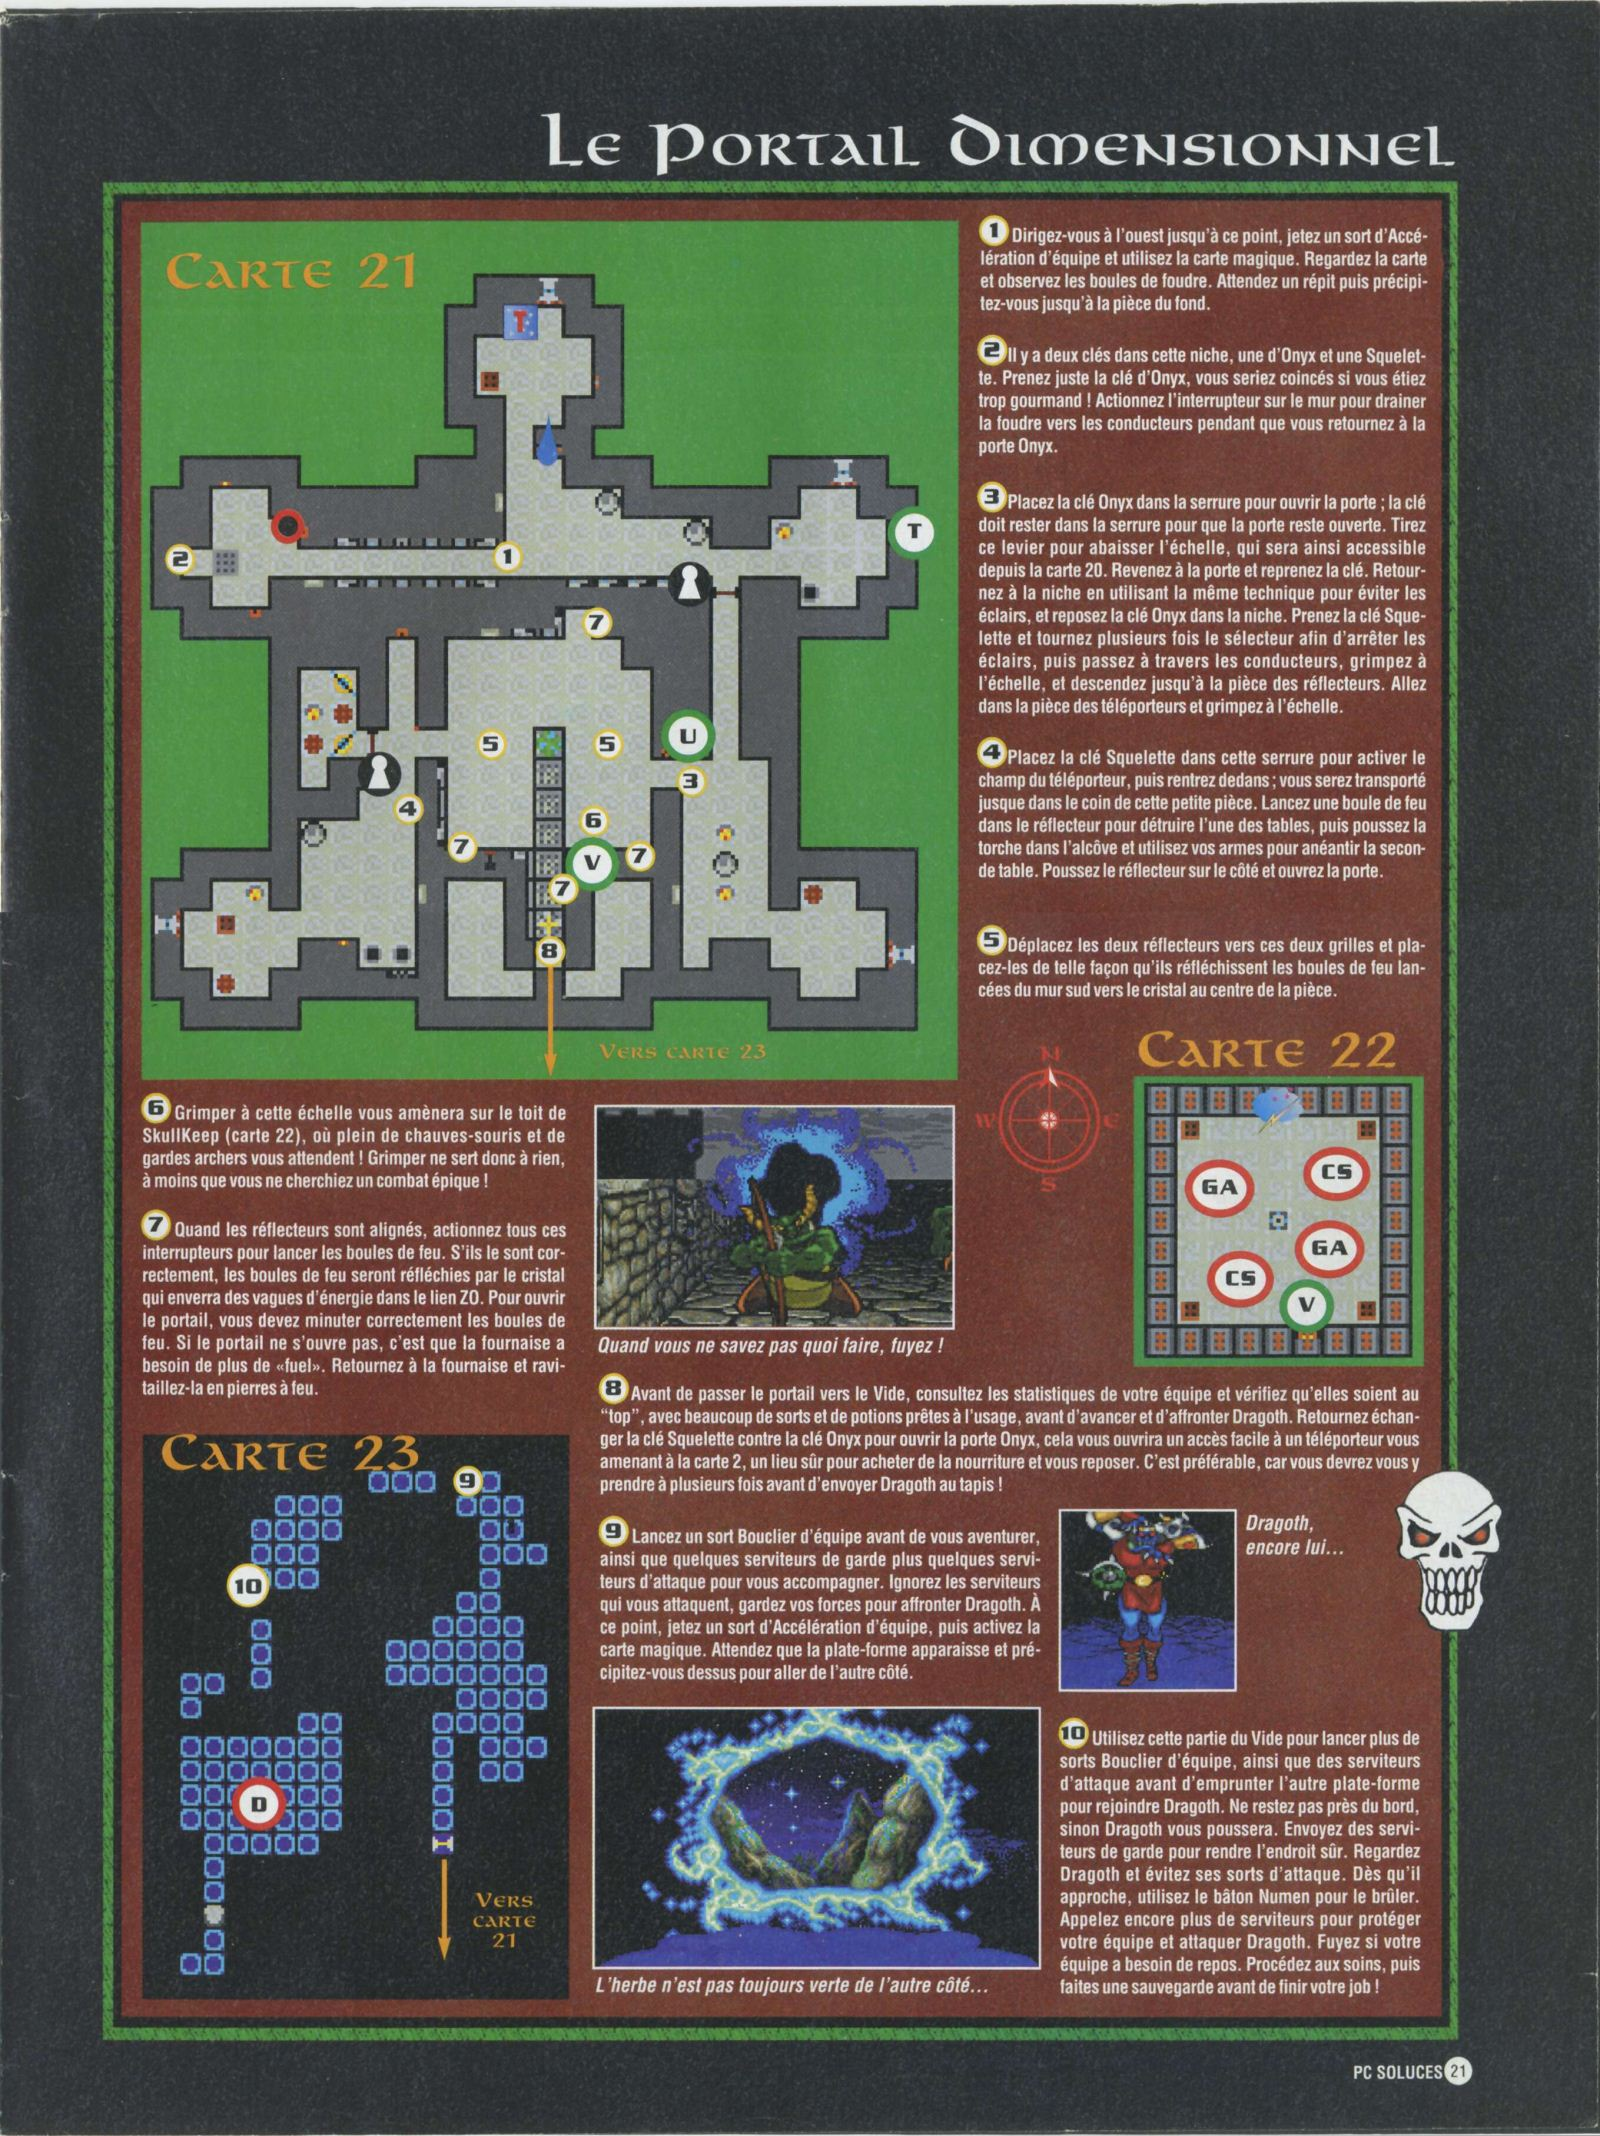 Dungeon Master II solution published in French magazine &amp;#039;PC Soluces&amp;#039;, Issue#1, February-March 1996, Page21